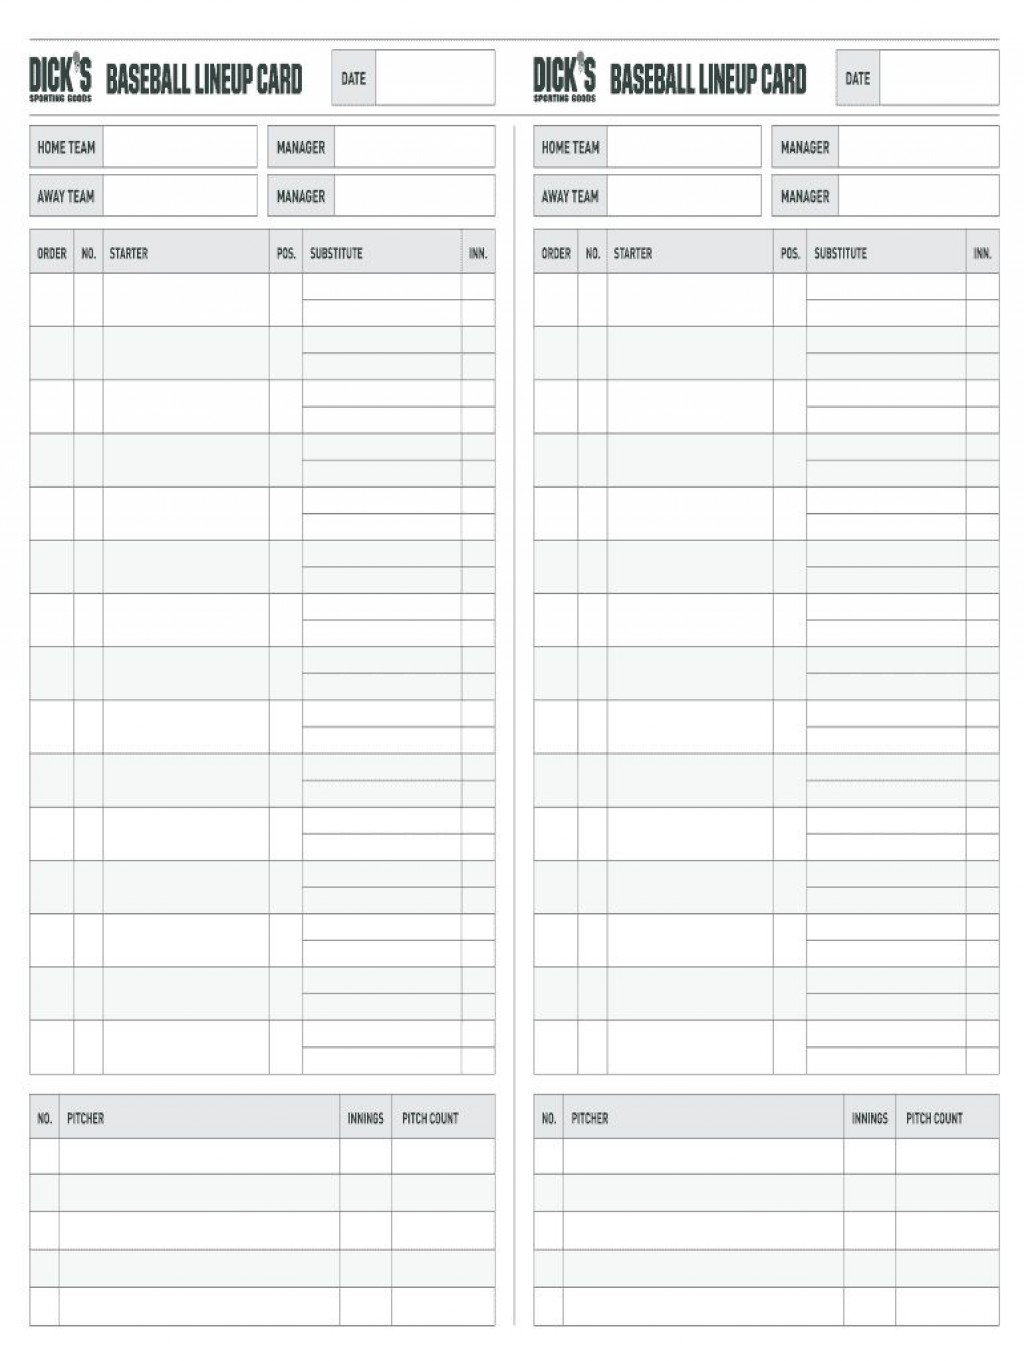 002 Archaicawful Softball Lineup Template Excel Picture  Batting Card RosterLarge